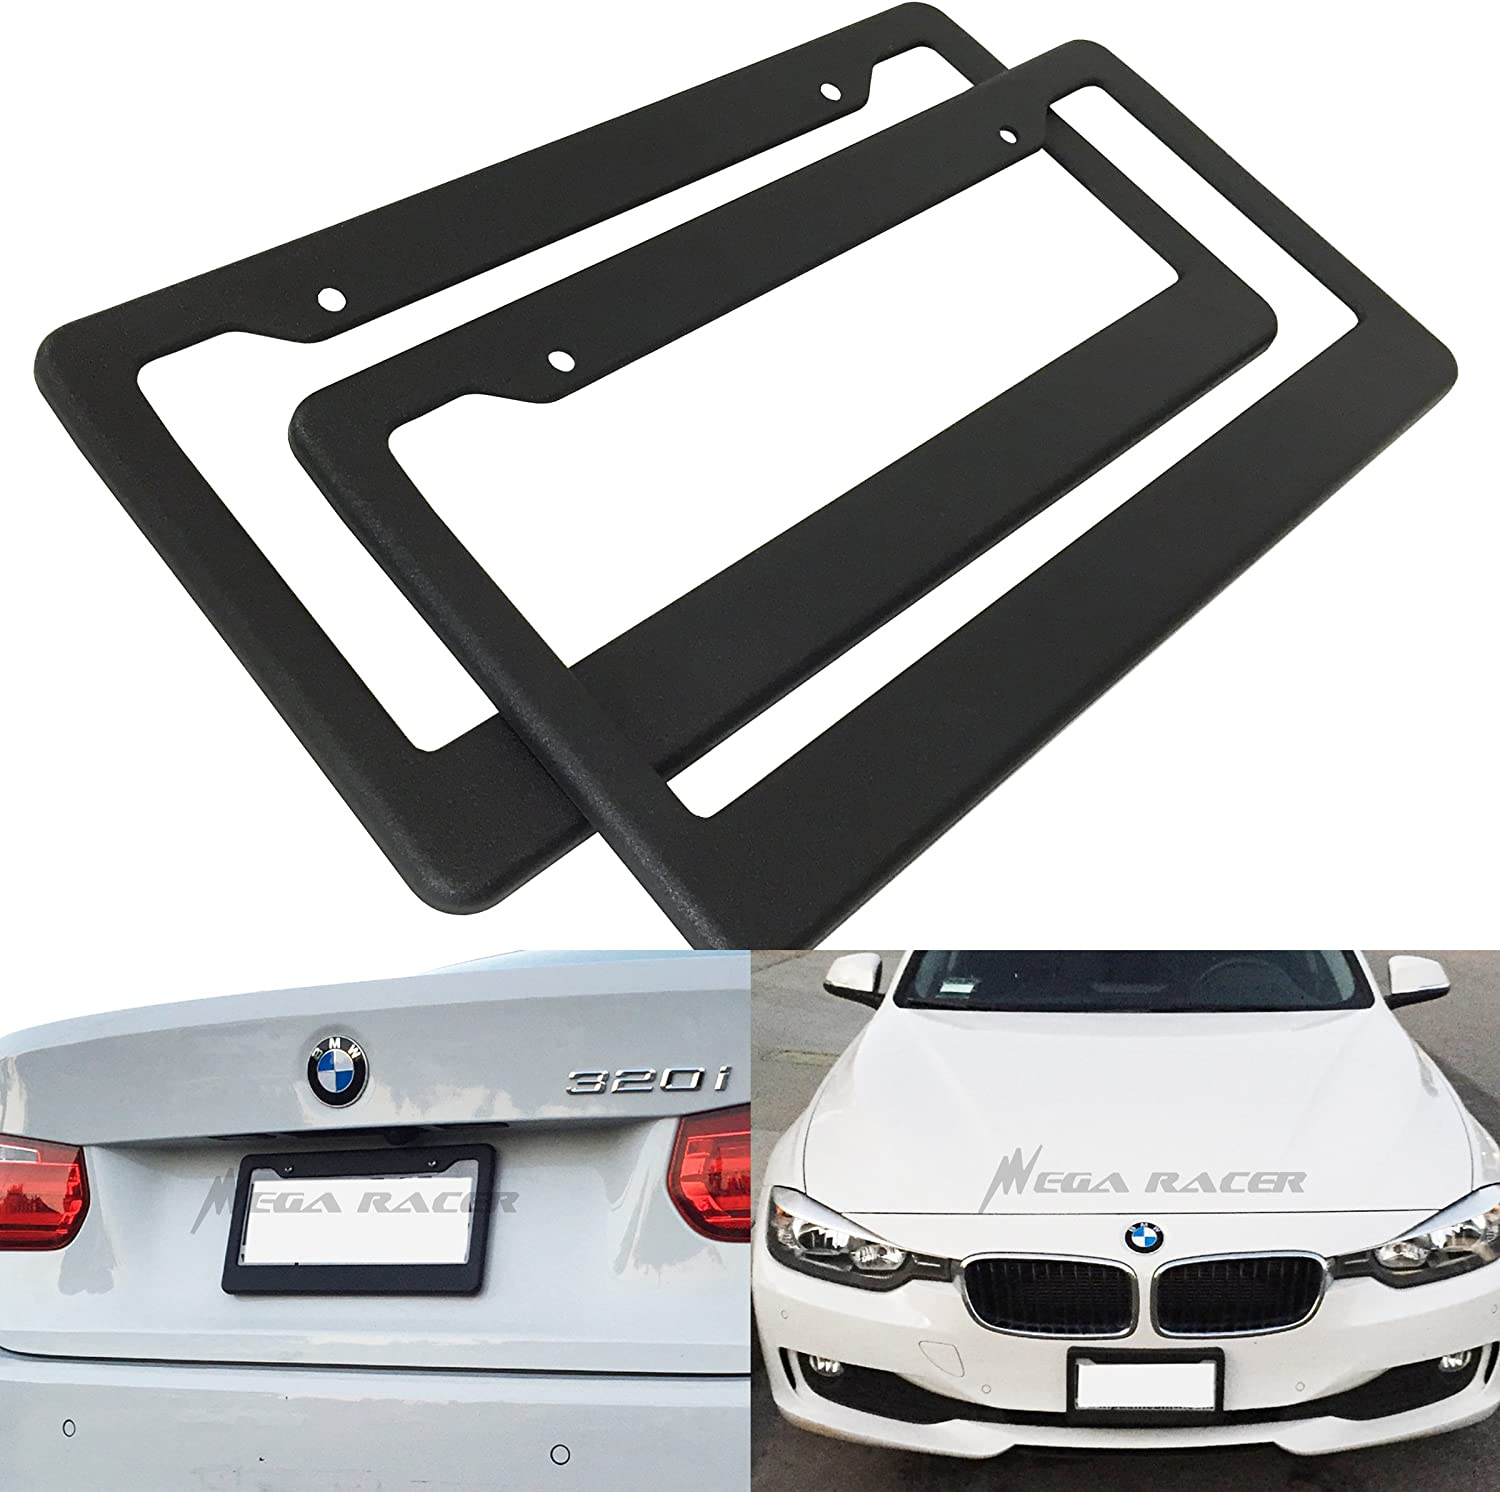 Mega Racer Pack of 2 JDM Style Matte Black License Plate Frame Front and Rear Cover Holder Tag US Auto Car Sedan Truck SUV RV Van